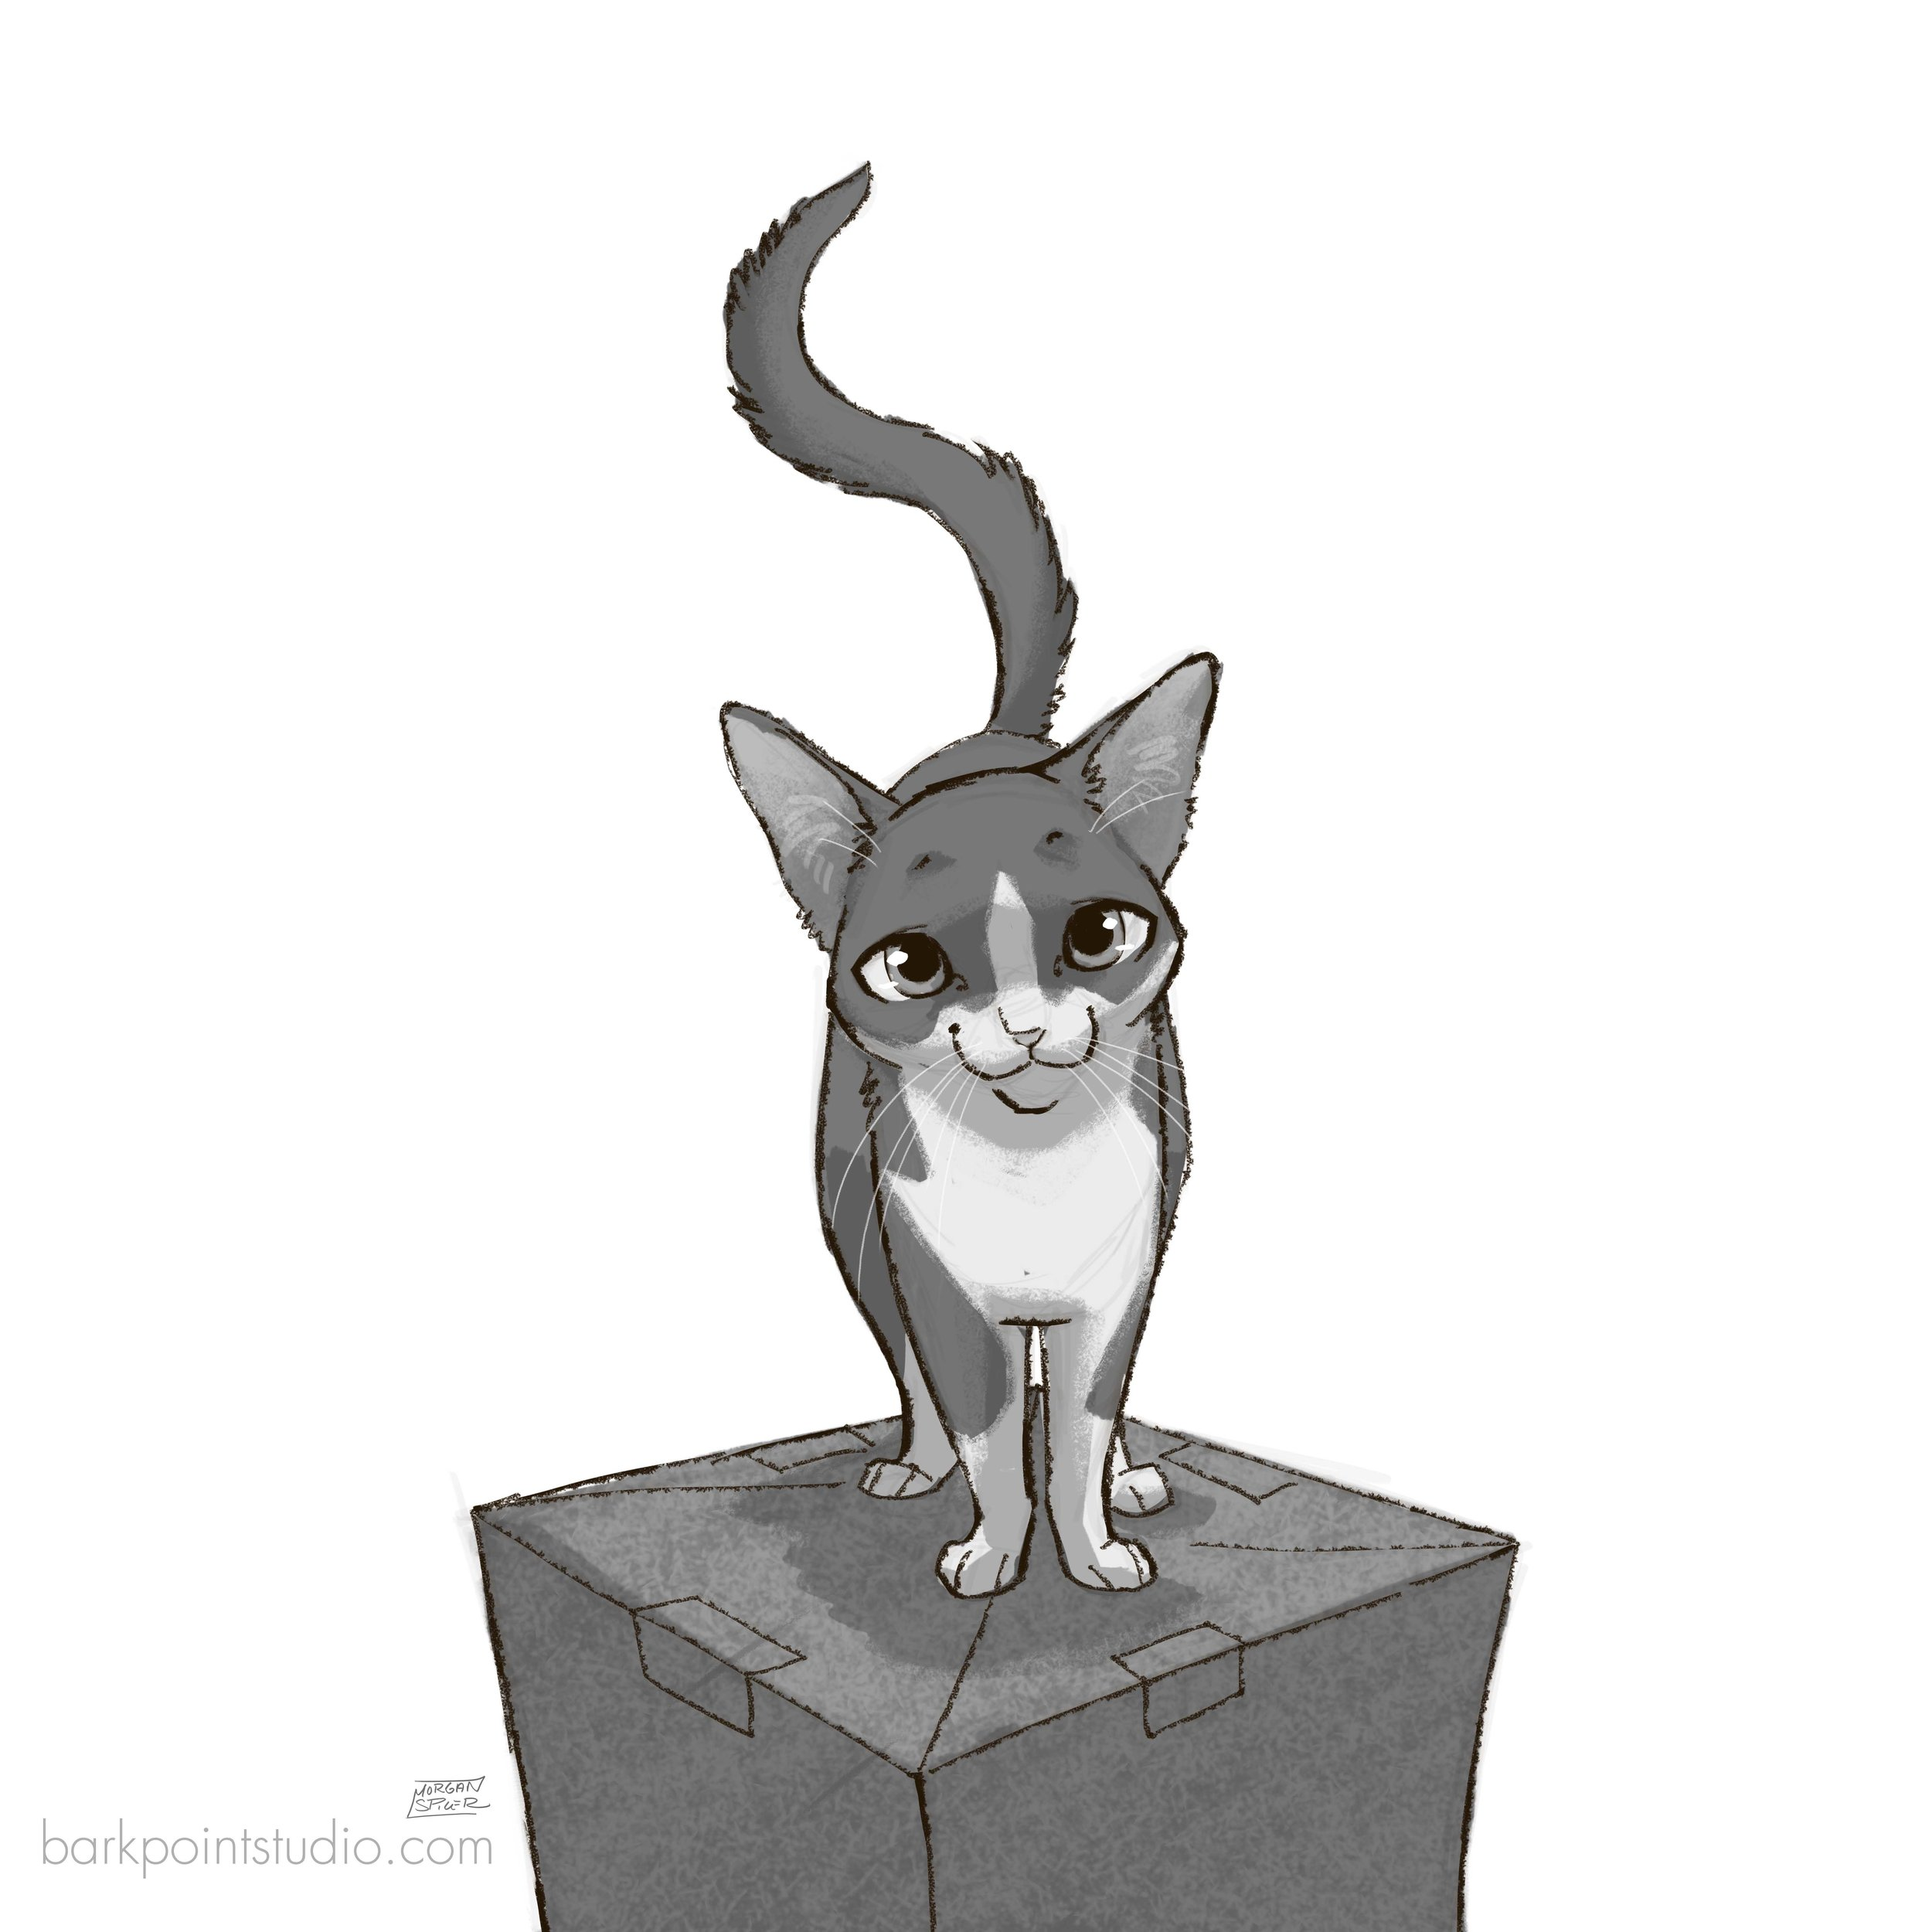 Louisa_JuniorTheKitty_Sketch2018_.jpg